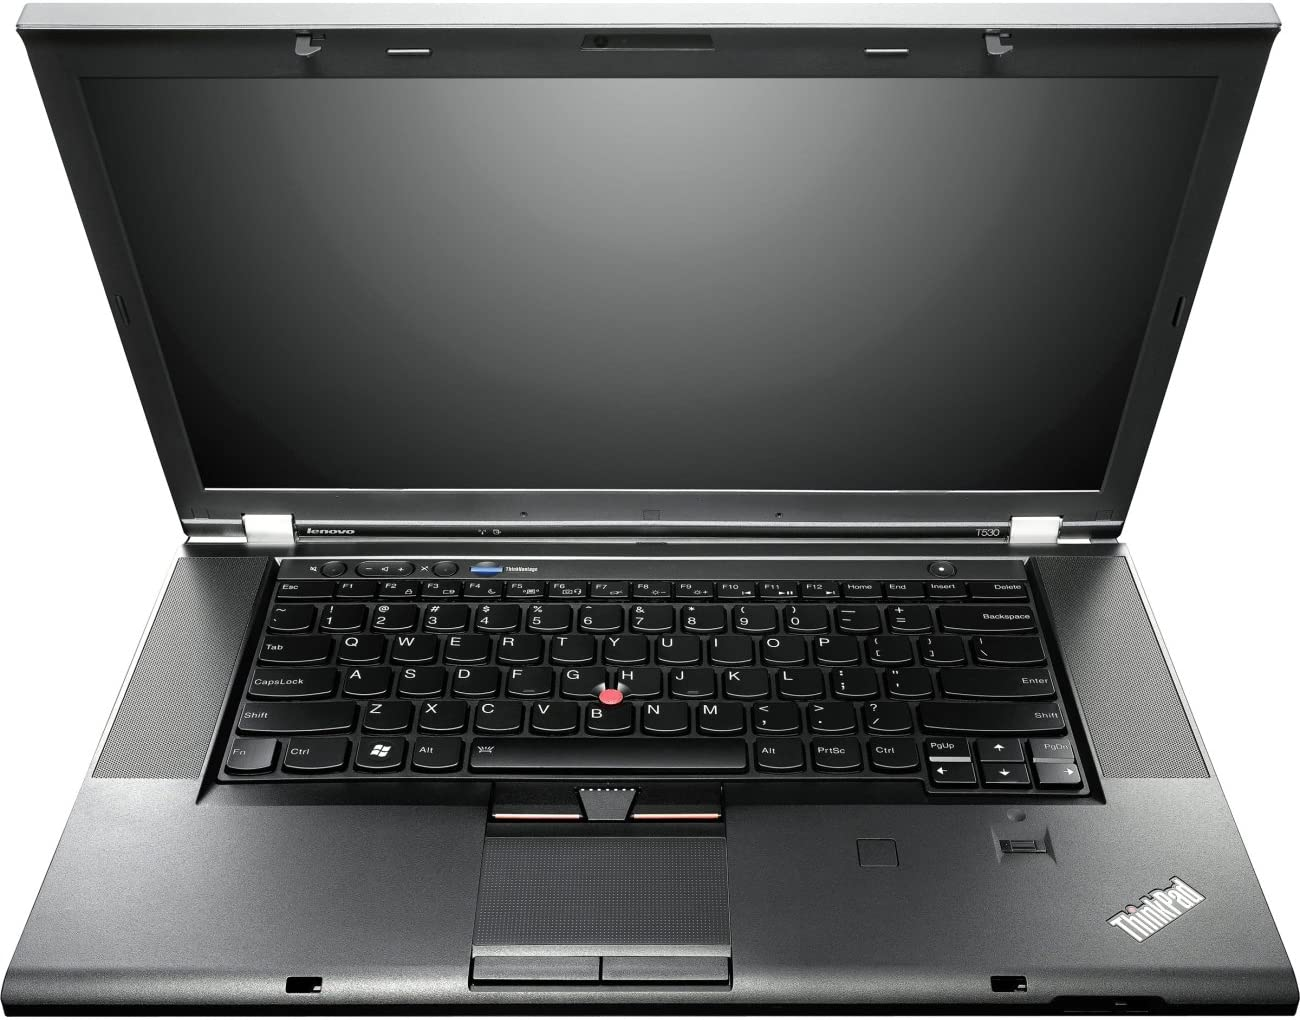 "ThinkPad T530 239461U 15.6"" LED Notebook - Intel - Core i5 i5-3320M 2.6GHz - Black"